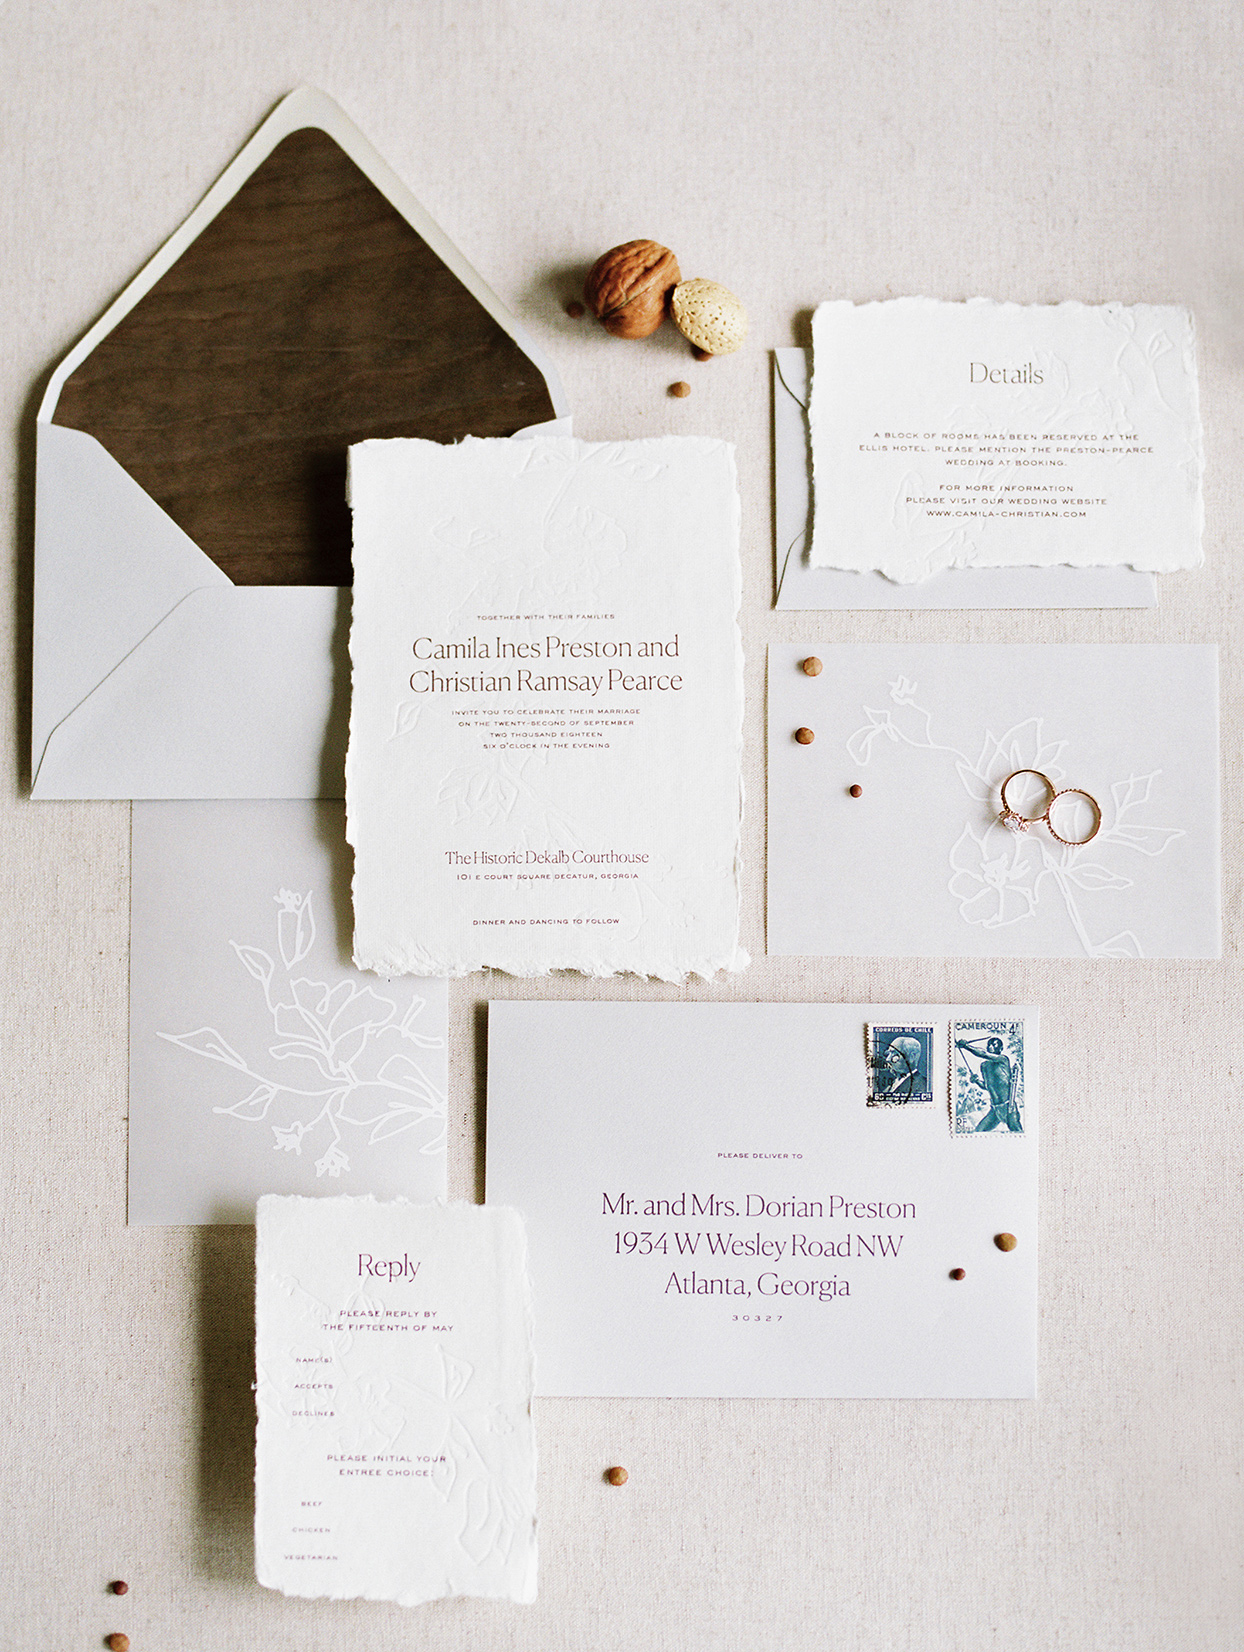 simple rustic wedding invitations with wood grain envelope lining